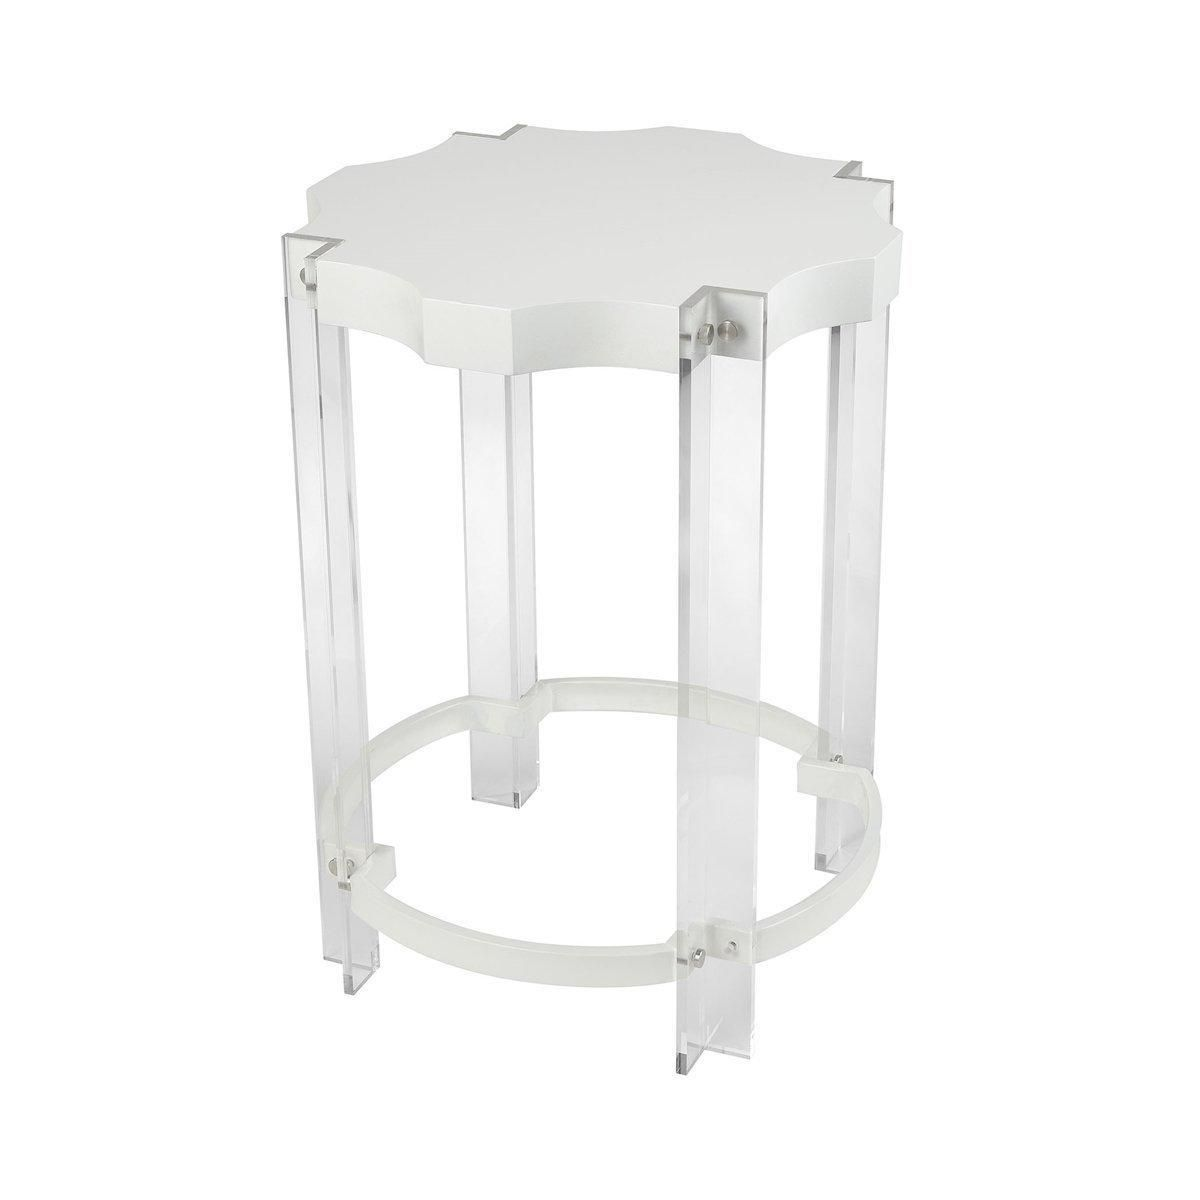 kamchatka accent table sterling products white small decorative tables living spaces end nautical bedside lamps gray closeout furniture inch legs cream colored nightstand